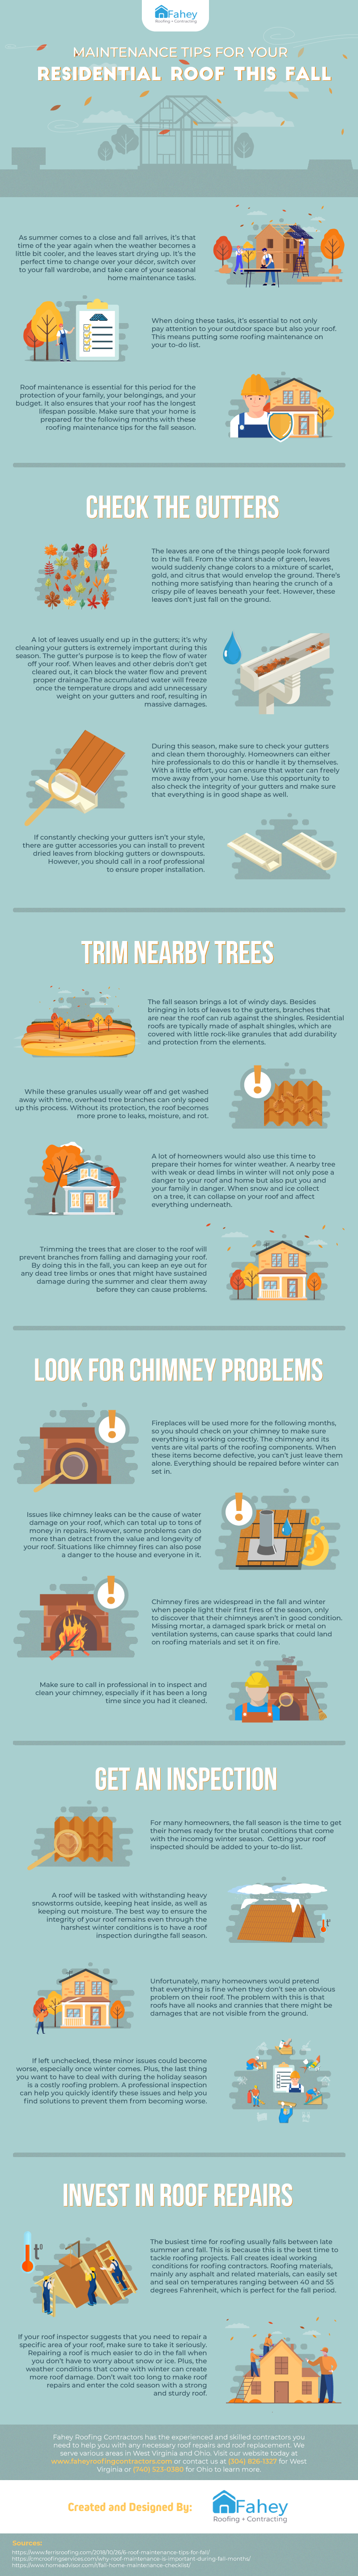 maintenance-tips-for-your-residential-roof-this-fall-infographic